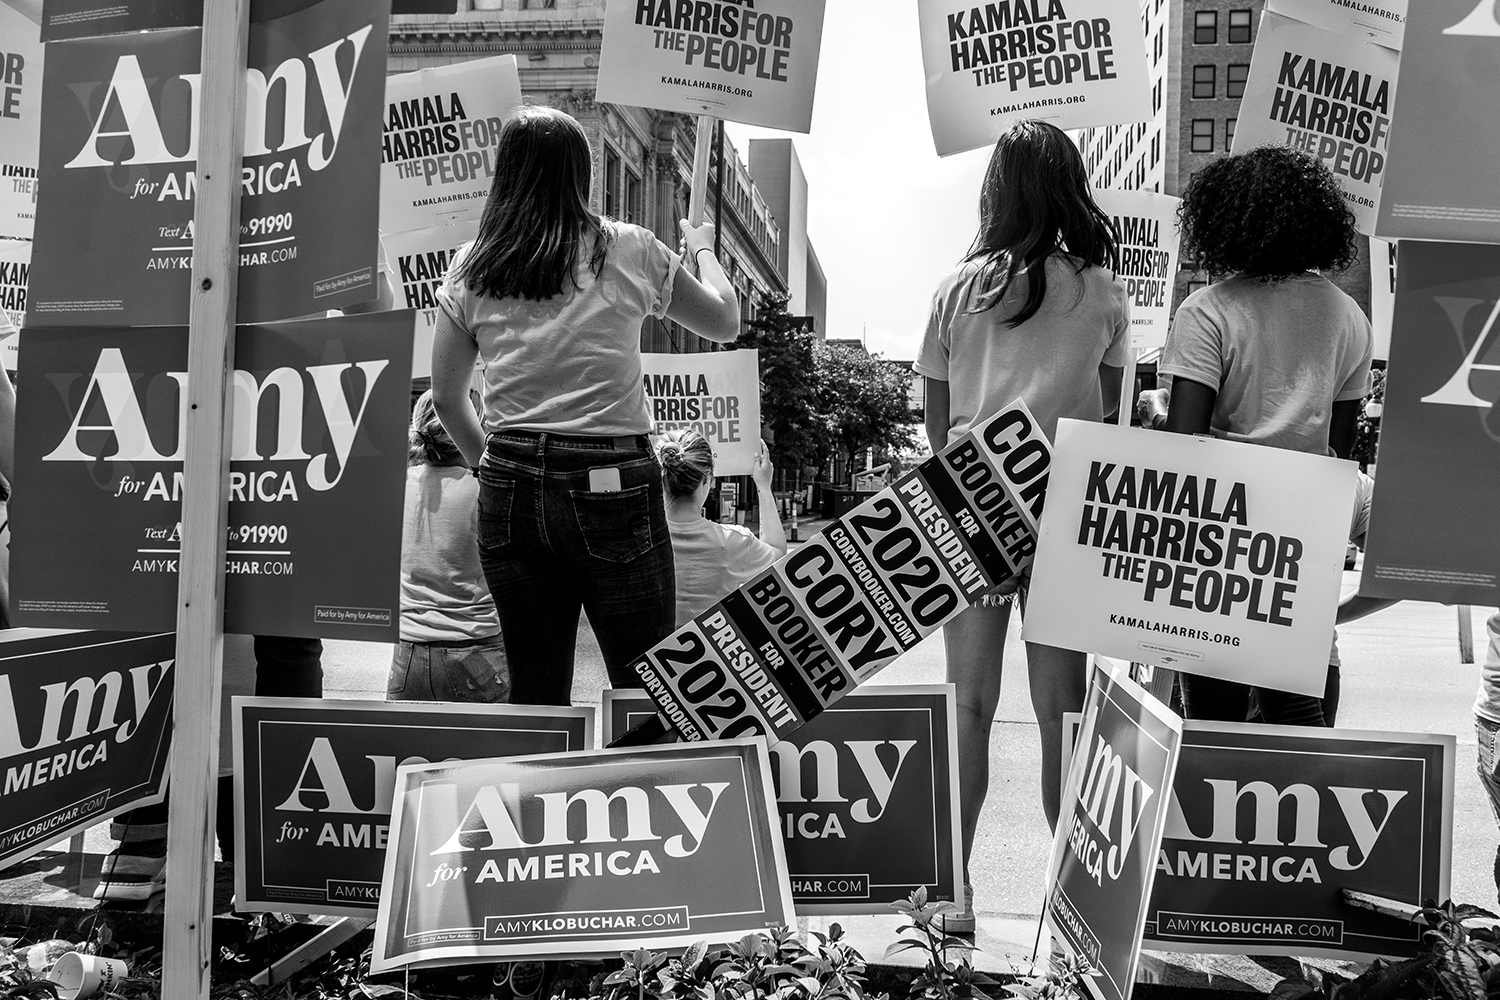 Supporters of Kamala Harris outside of the  Doubletree Hilton Hotel in Cedar Rapids on Sunday, June 9, 2019. 19 democrats spoke at the Iowa Democratic Party Hall of Fame.